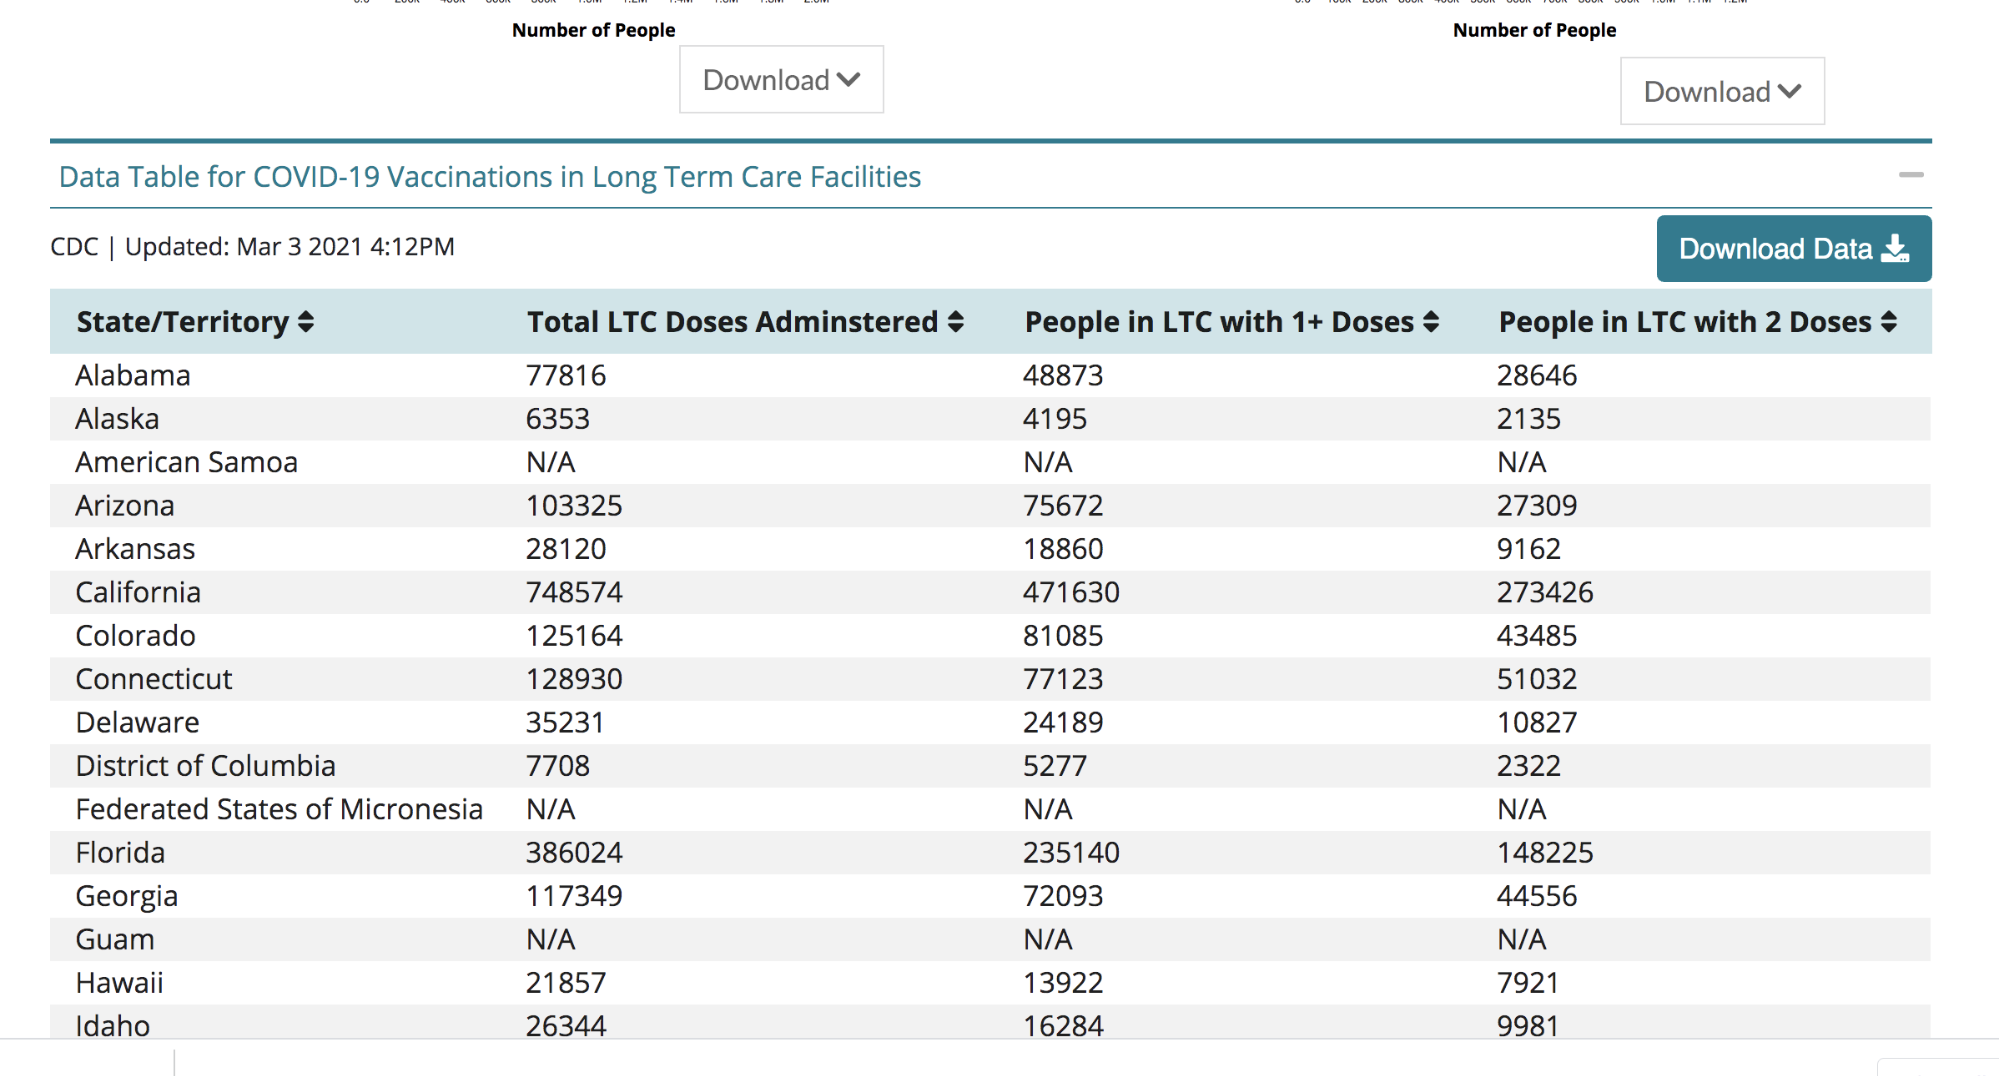 Screenshot of the COVID-19 vaccination data table for Long-Term-Care facilities located on the CDC website.